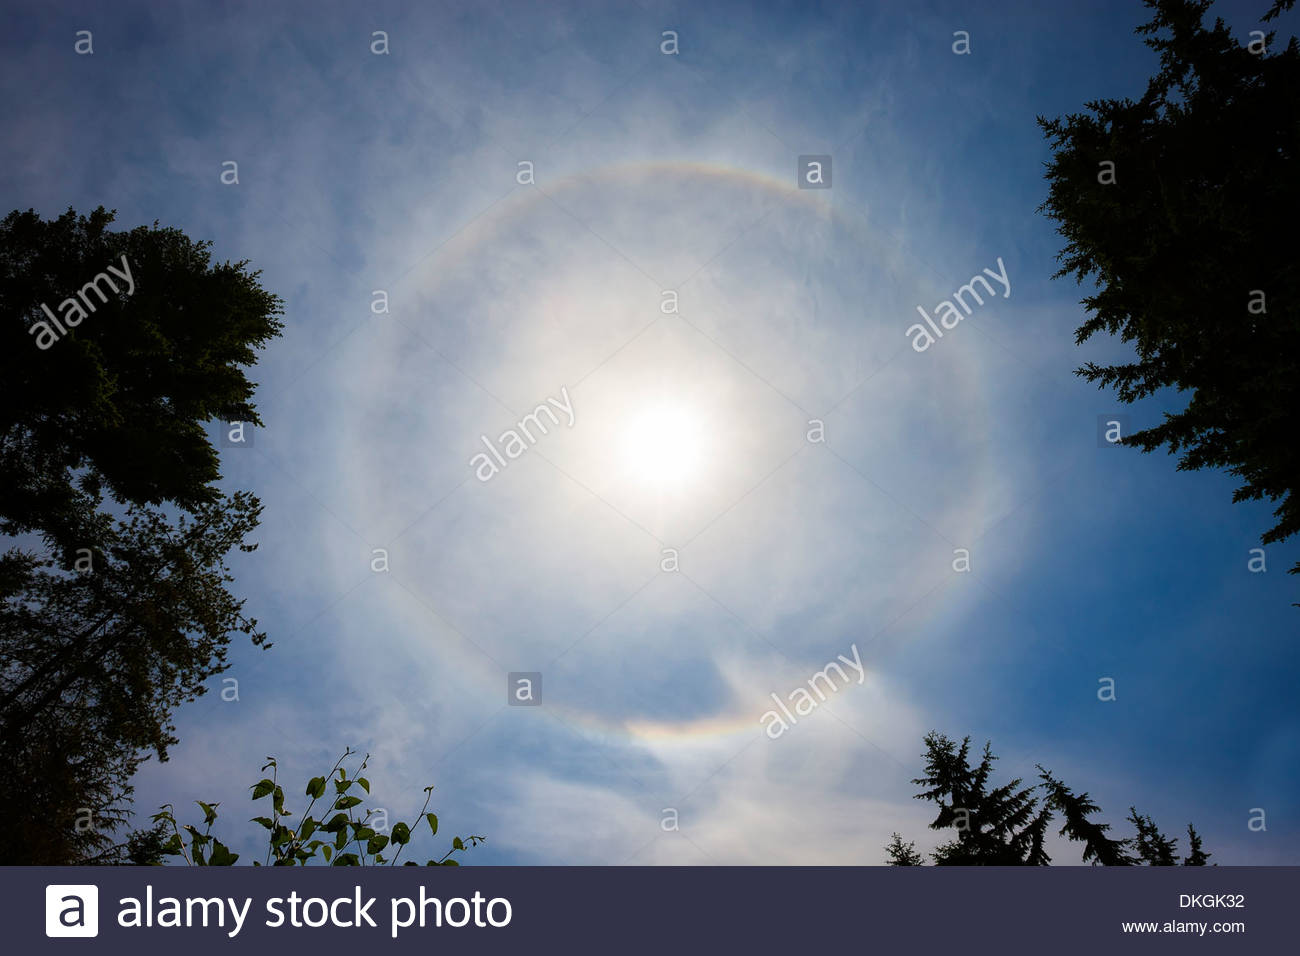 A 22° halo forms around the sun over Snohomish County, Washington. - Stock Image